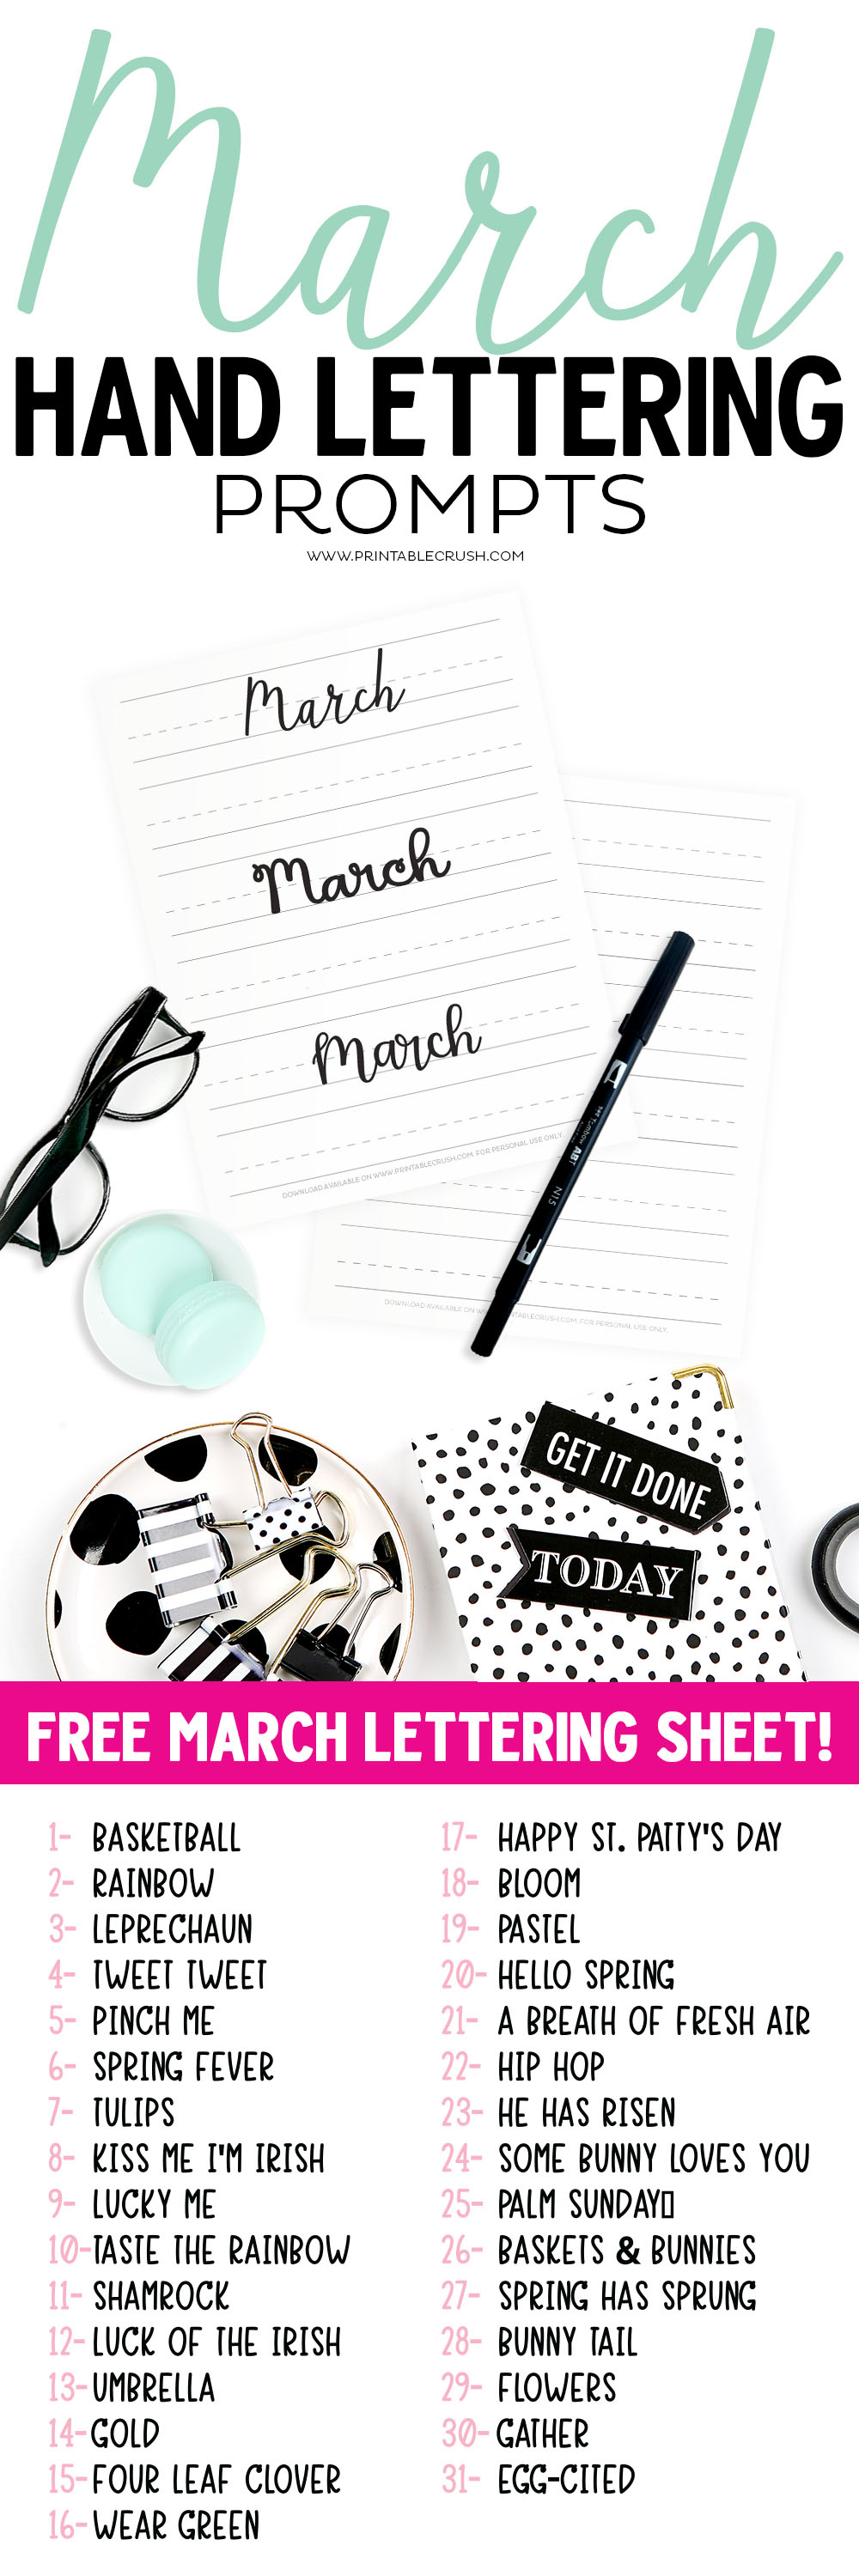 Get 31 MARCH Hand Lettering Prompts plus a FREE practice sheet in this blog series to improve your hand lettering skills. Plus, learn how you can get 31 days of MARCH lettering worksheets! via @printablecrush